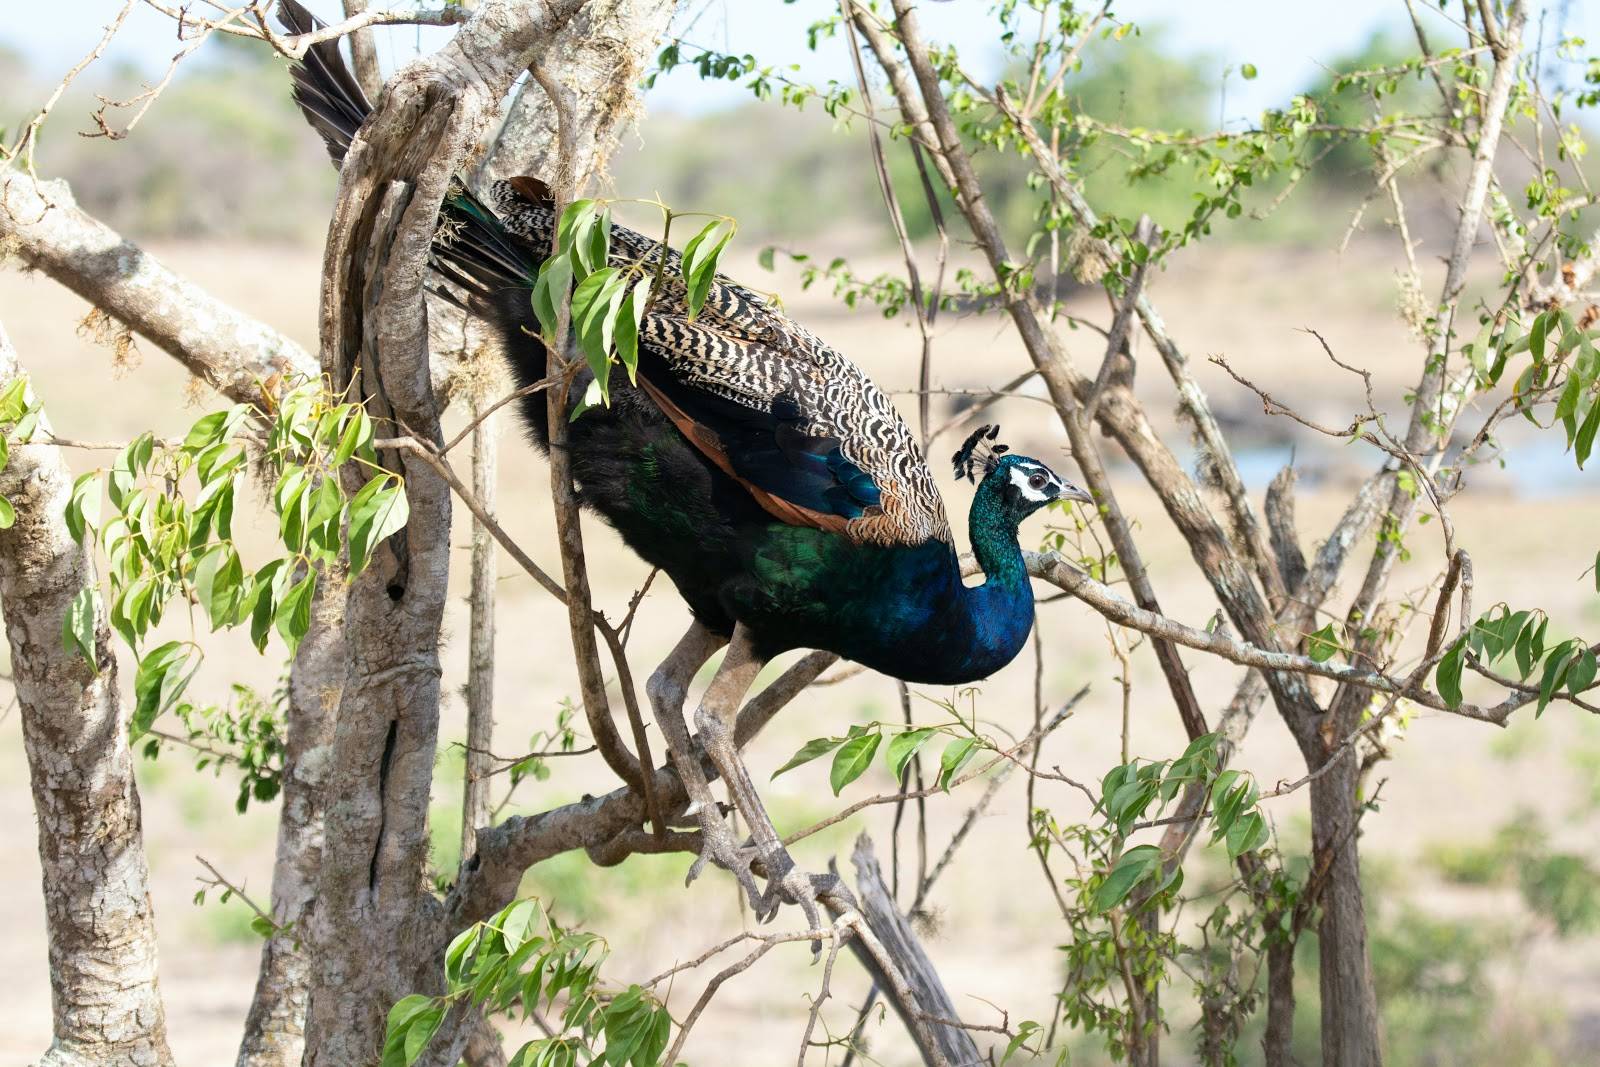 blue-and-green-peacock-on-tree-branch-images